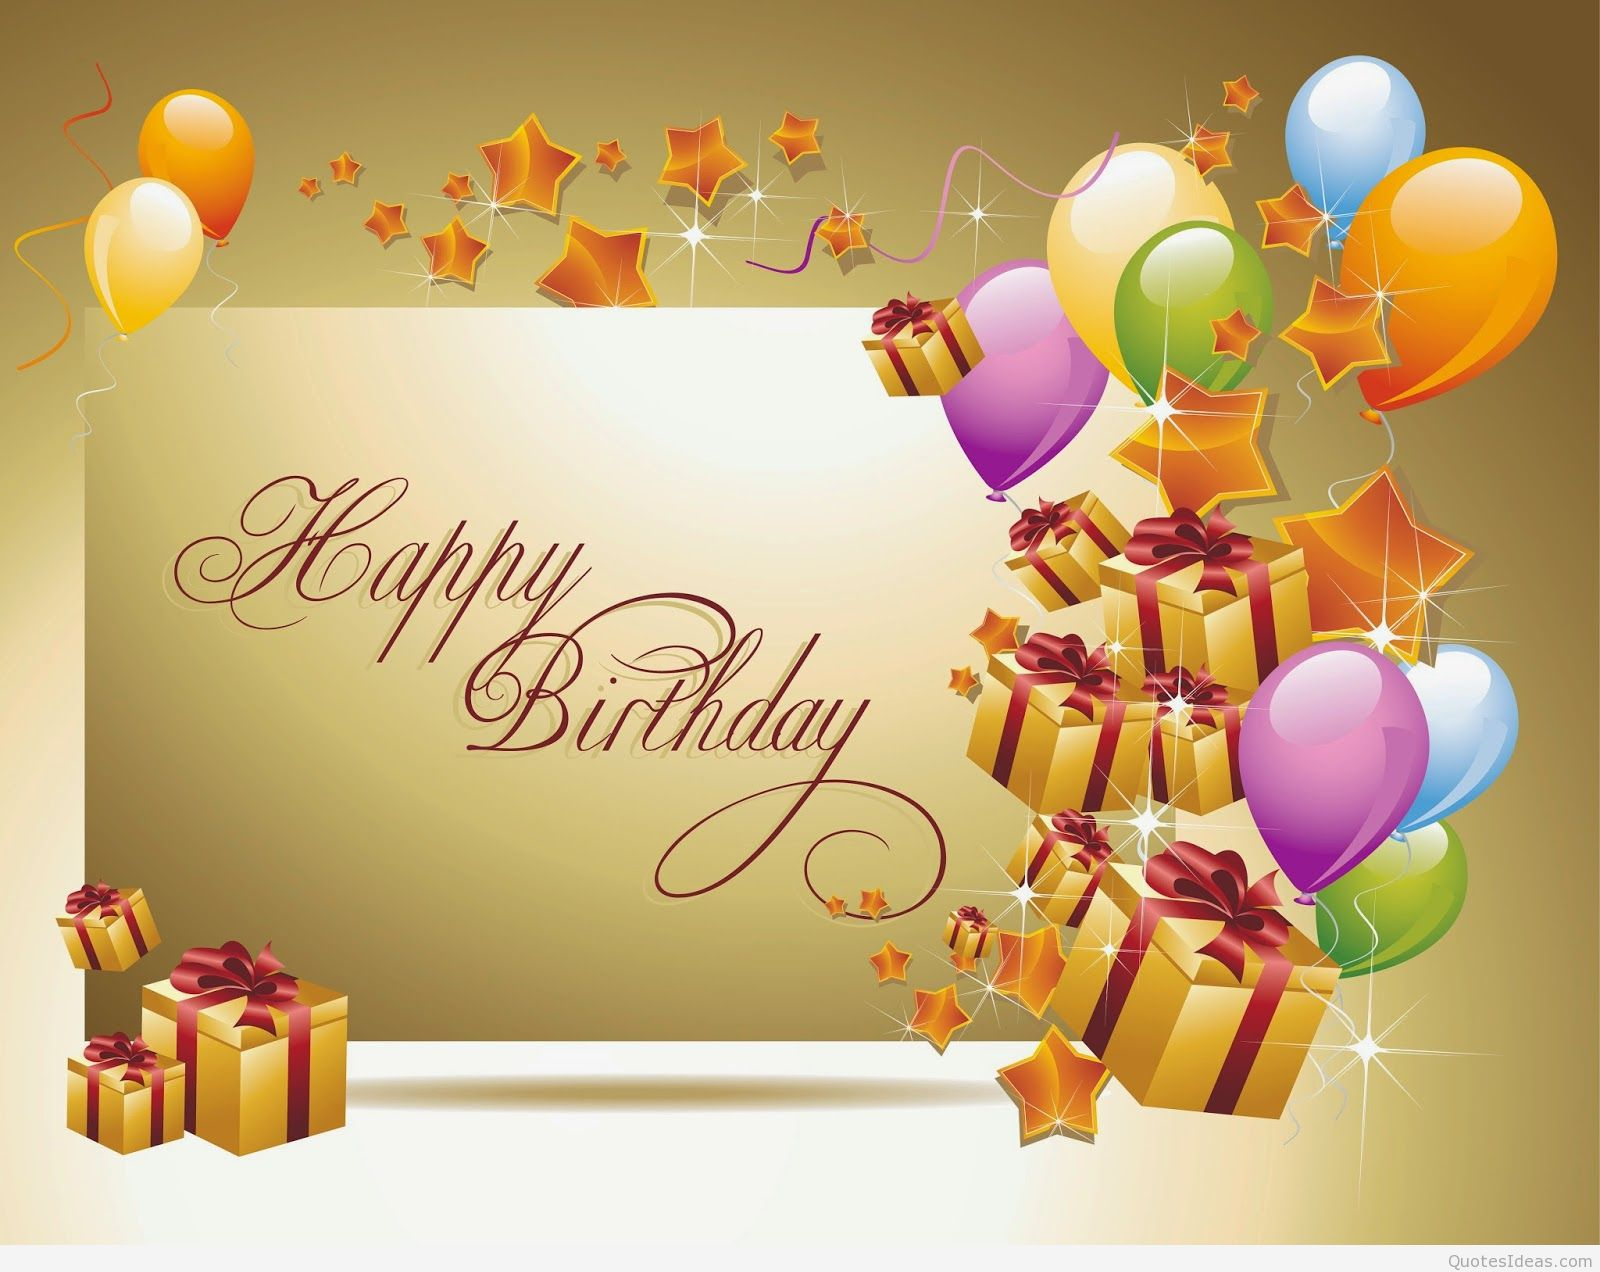 hd wallpaper happy birthday gifts ; happy-birthday-gift-hd-wallpaper